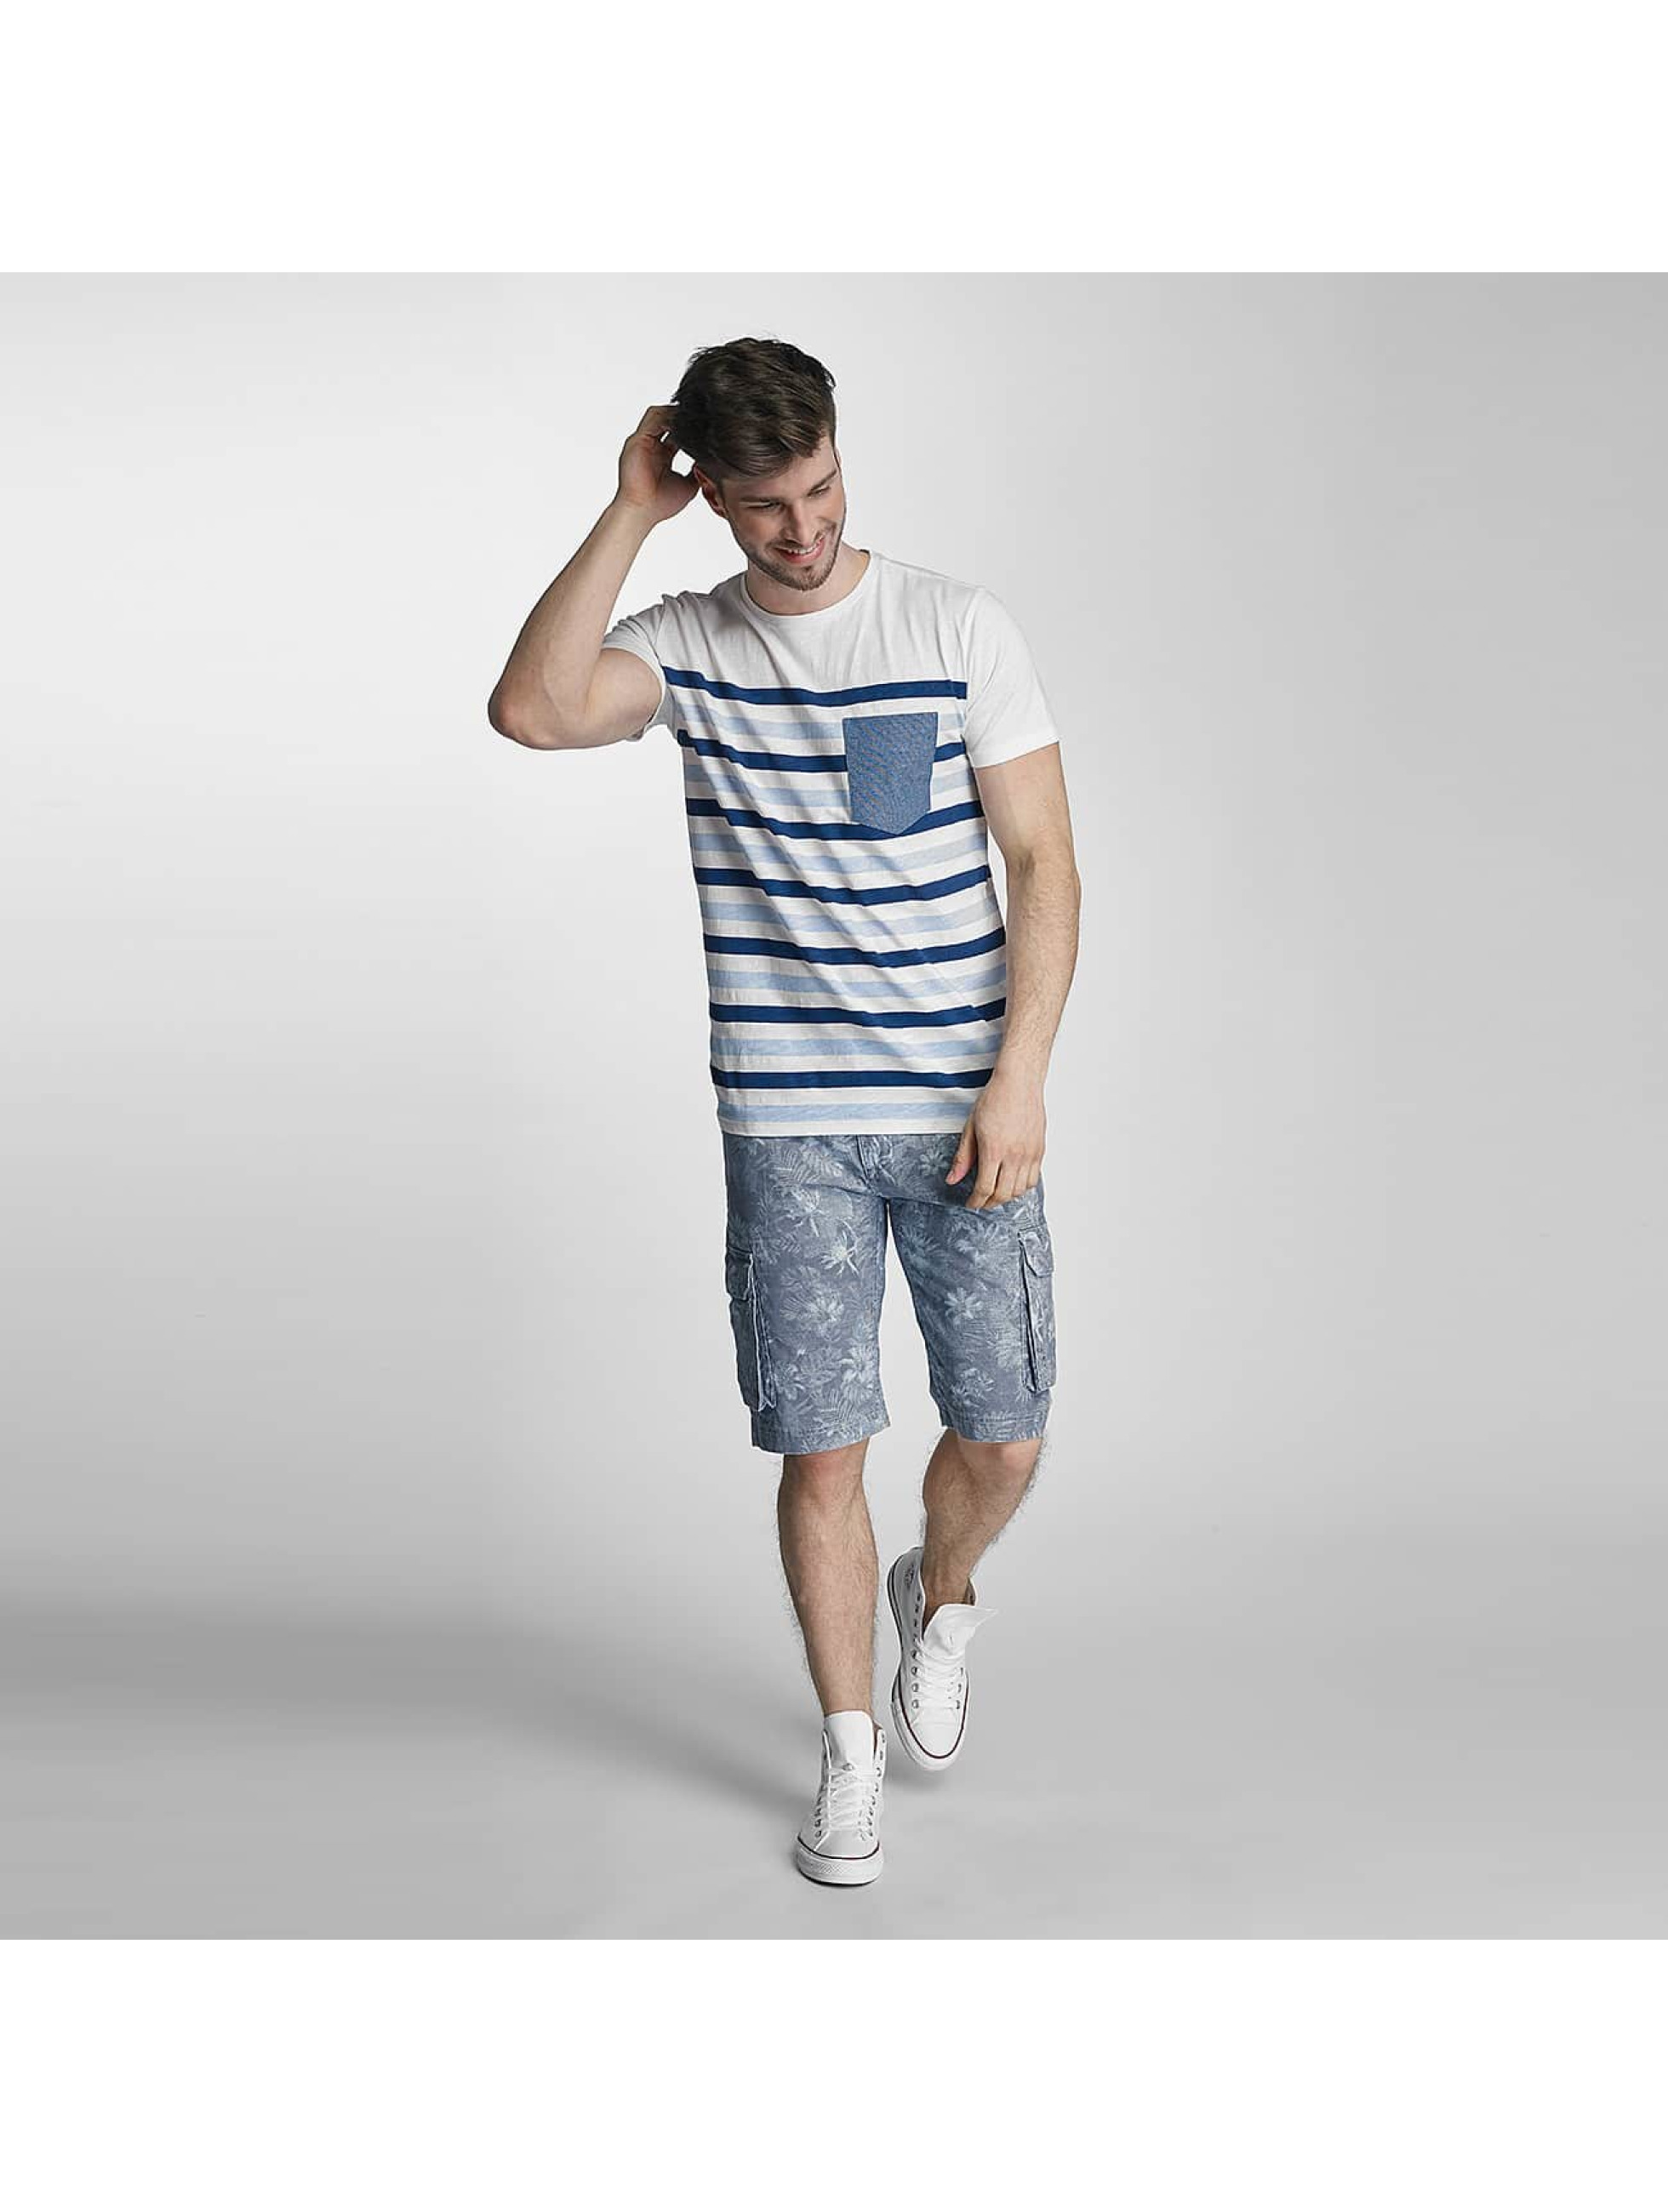 SHINE Original T-Shirt Striped blau